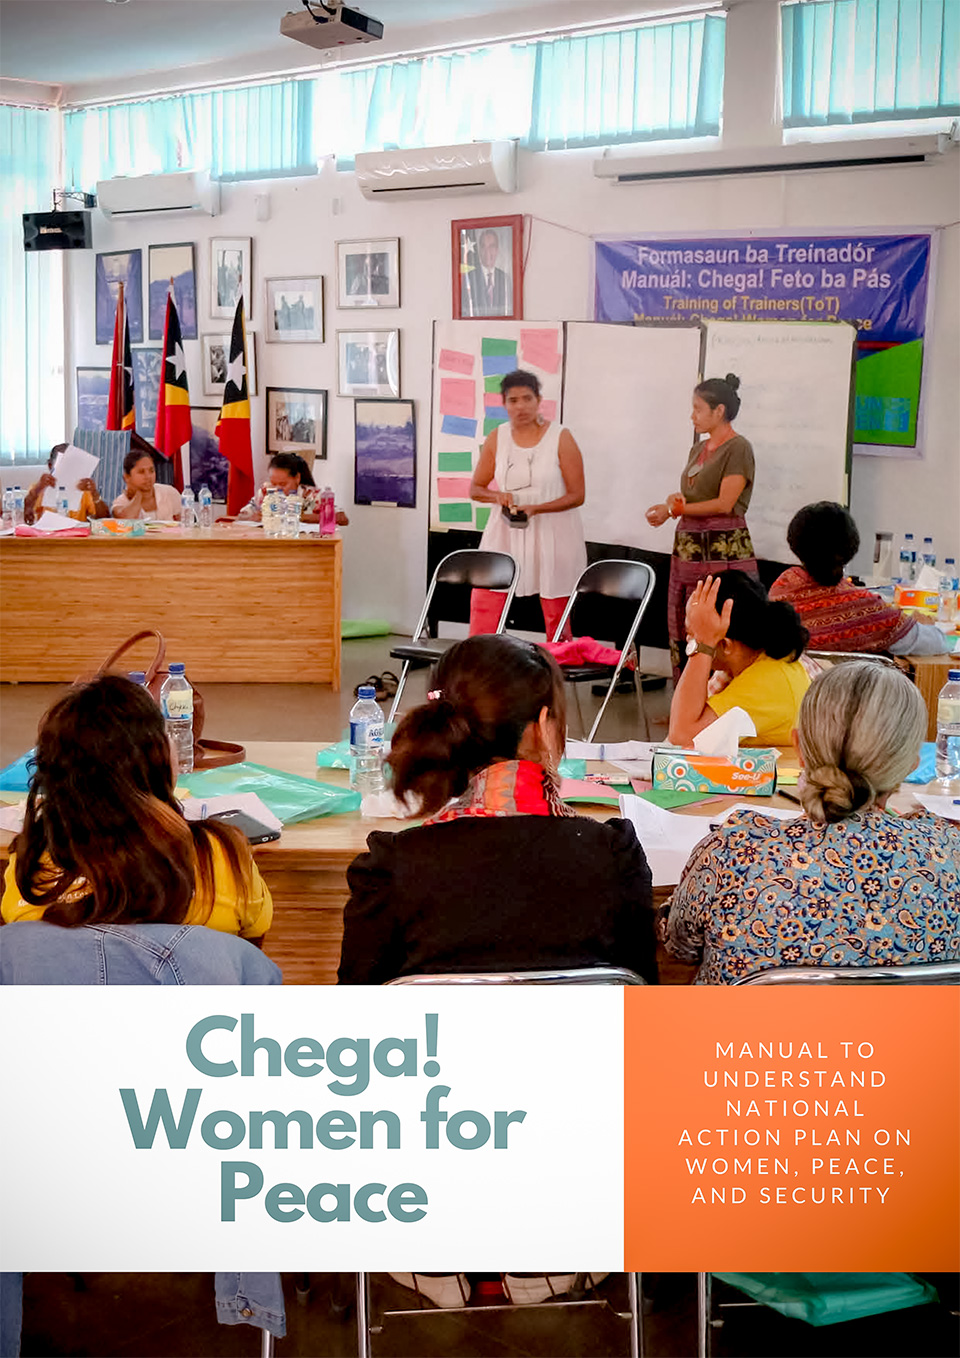 Chega! Women for Peace – A Manual to Understand the UNSCR 1325 National Action Plan on Women, Peace and Security in Timor-Leste